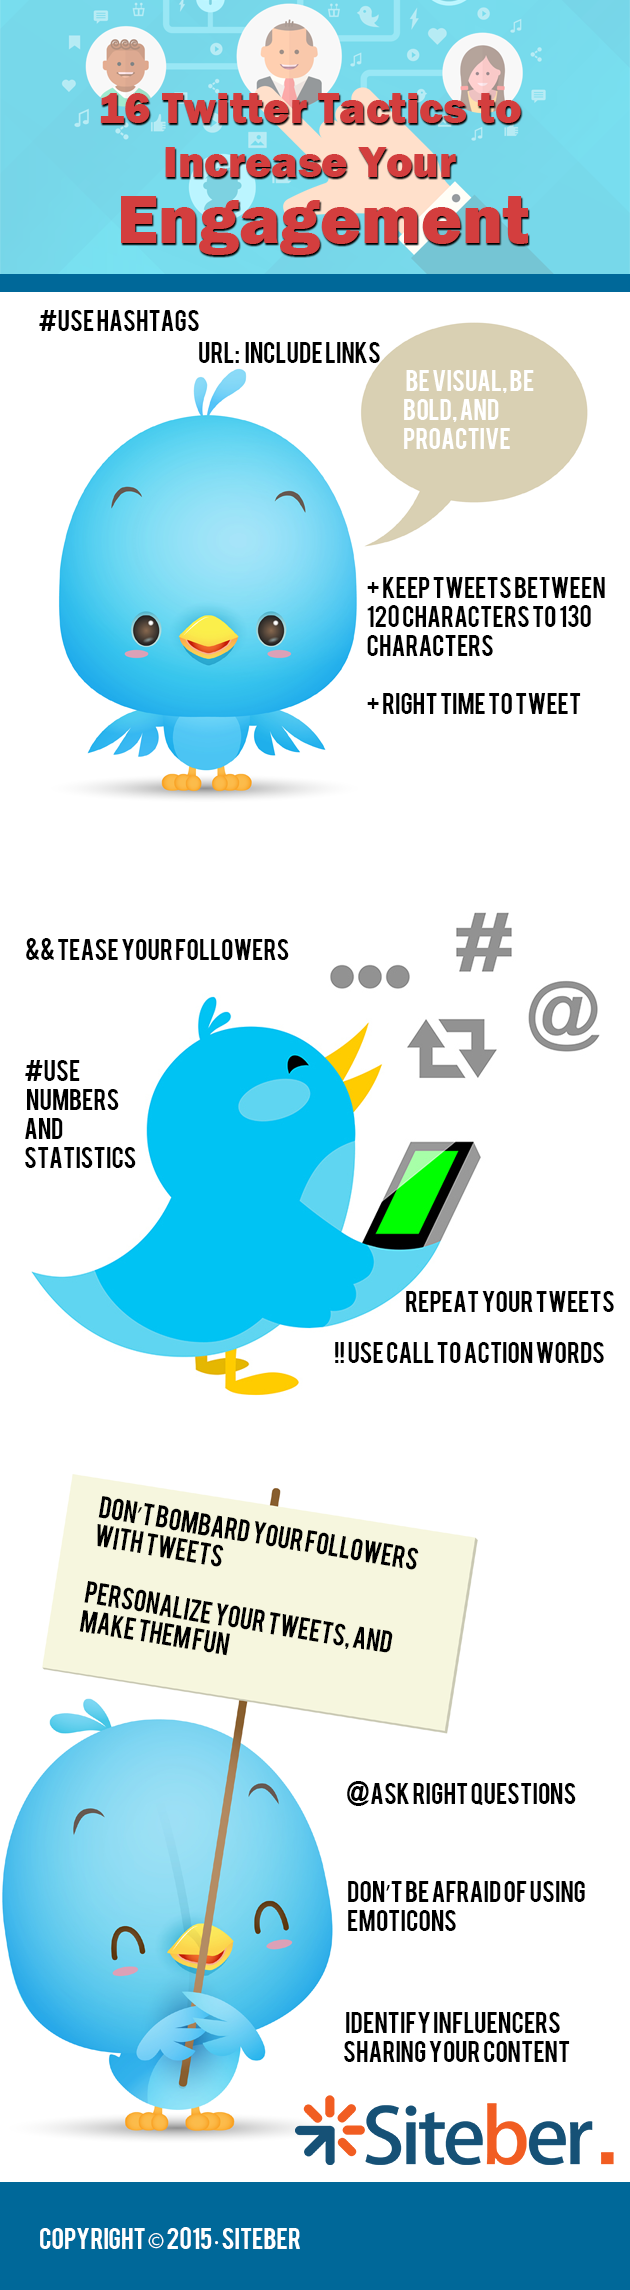 Twitter-Tactics-to-Increase-Your-Engagement-infographic